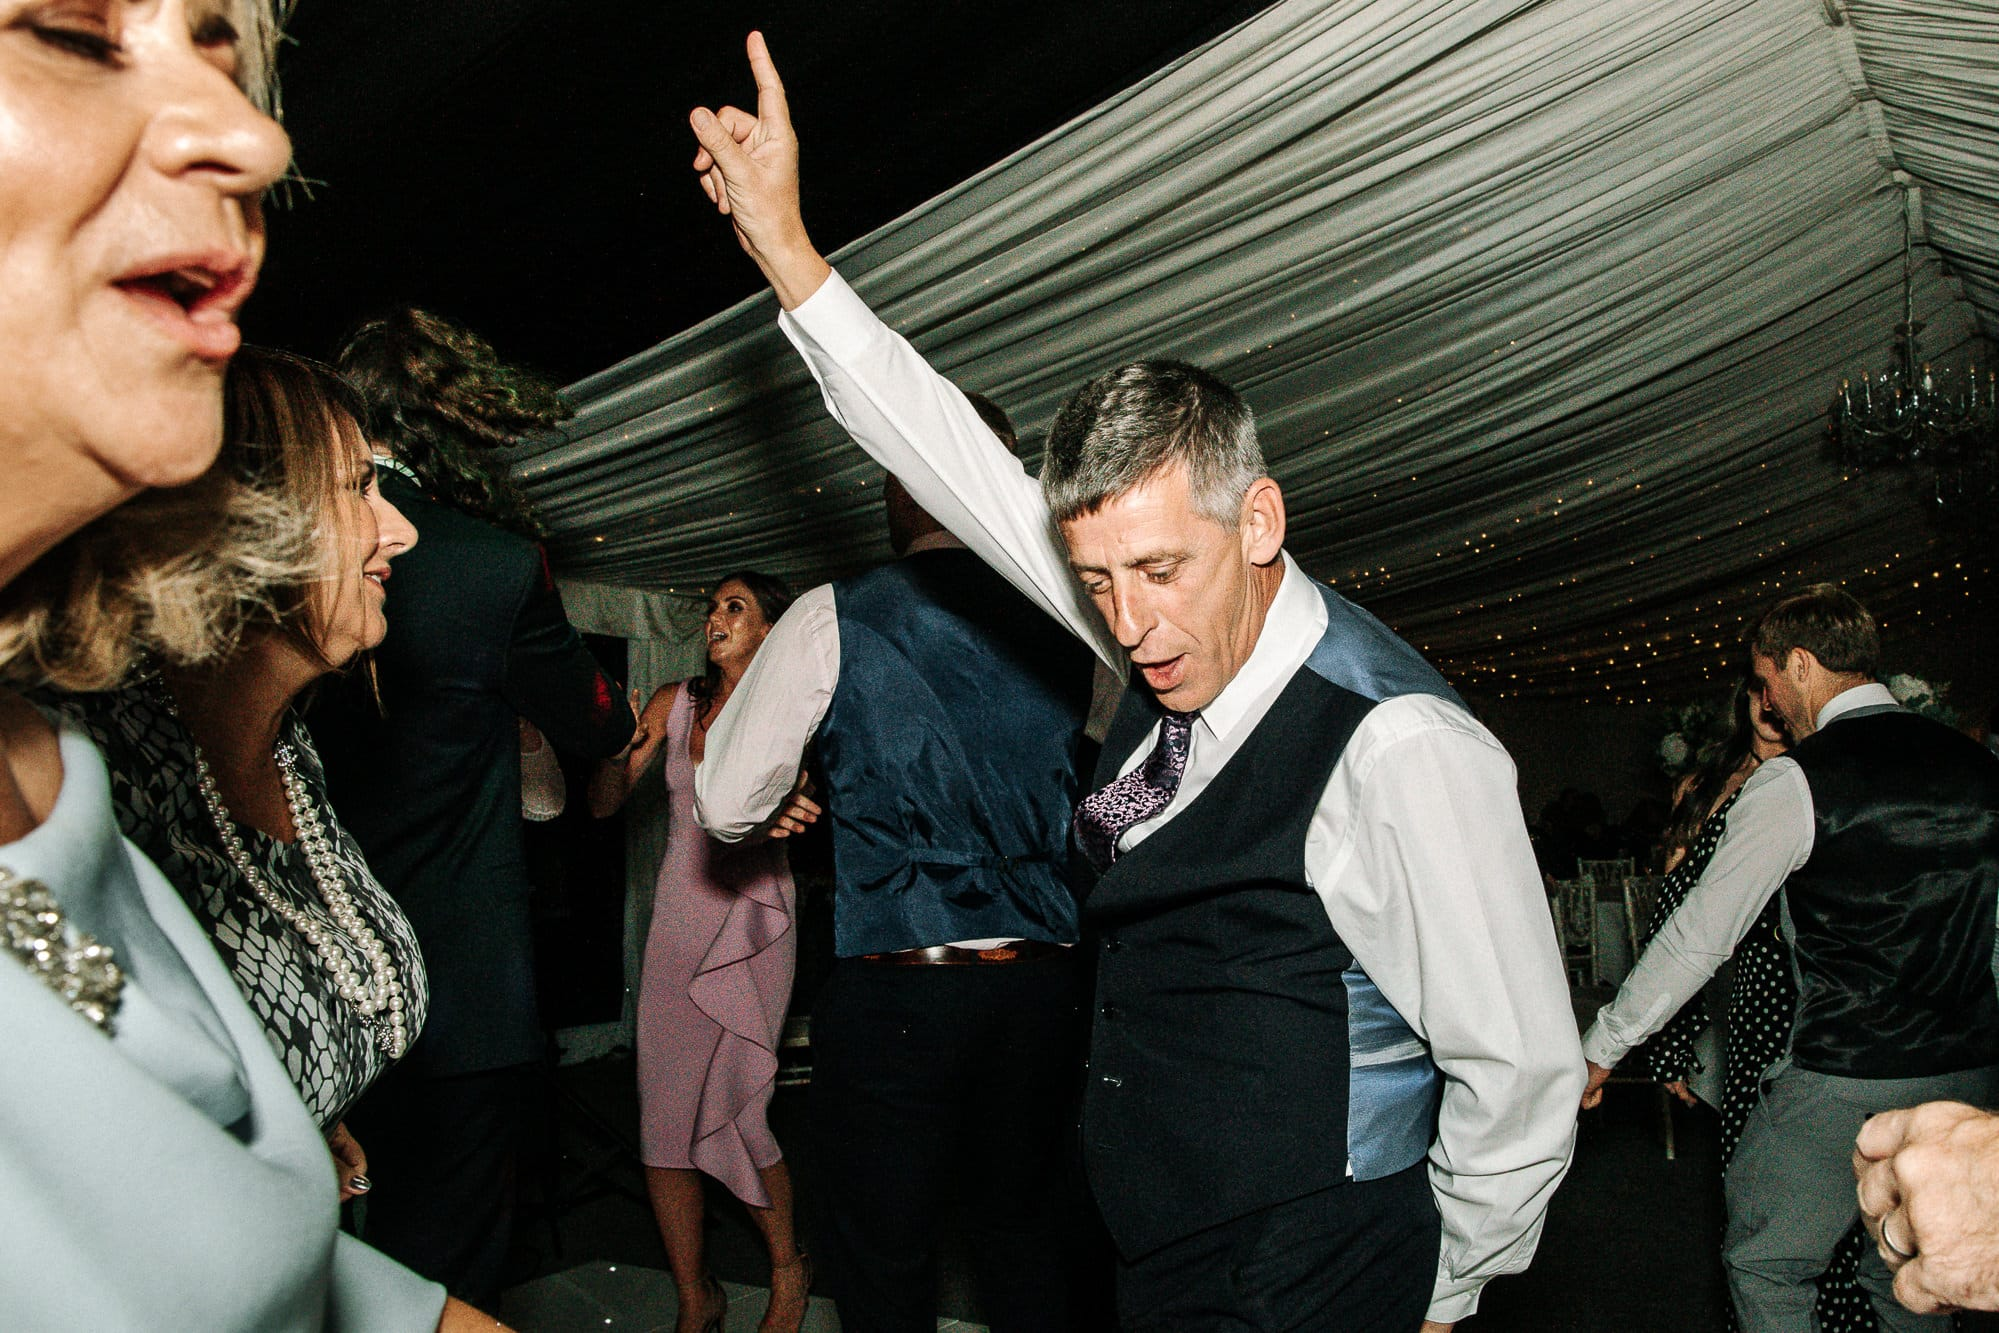 guest dancing with his arm in the air